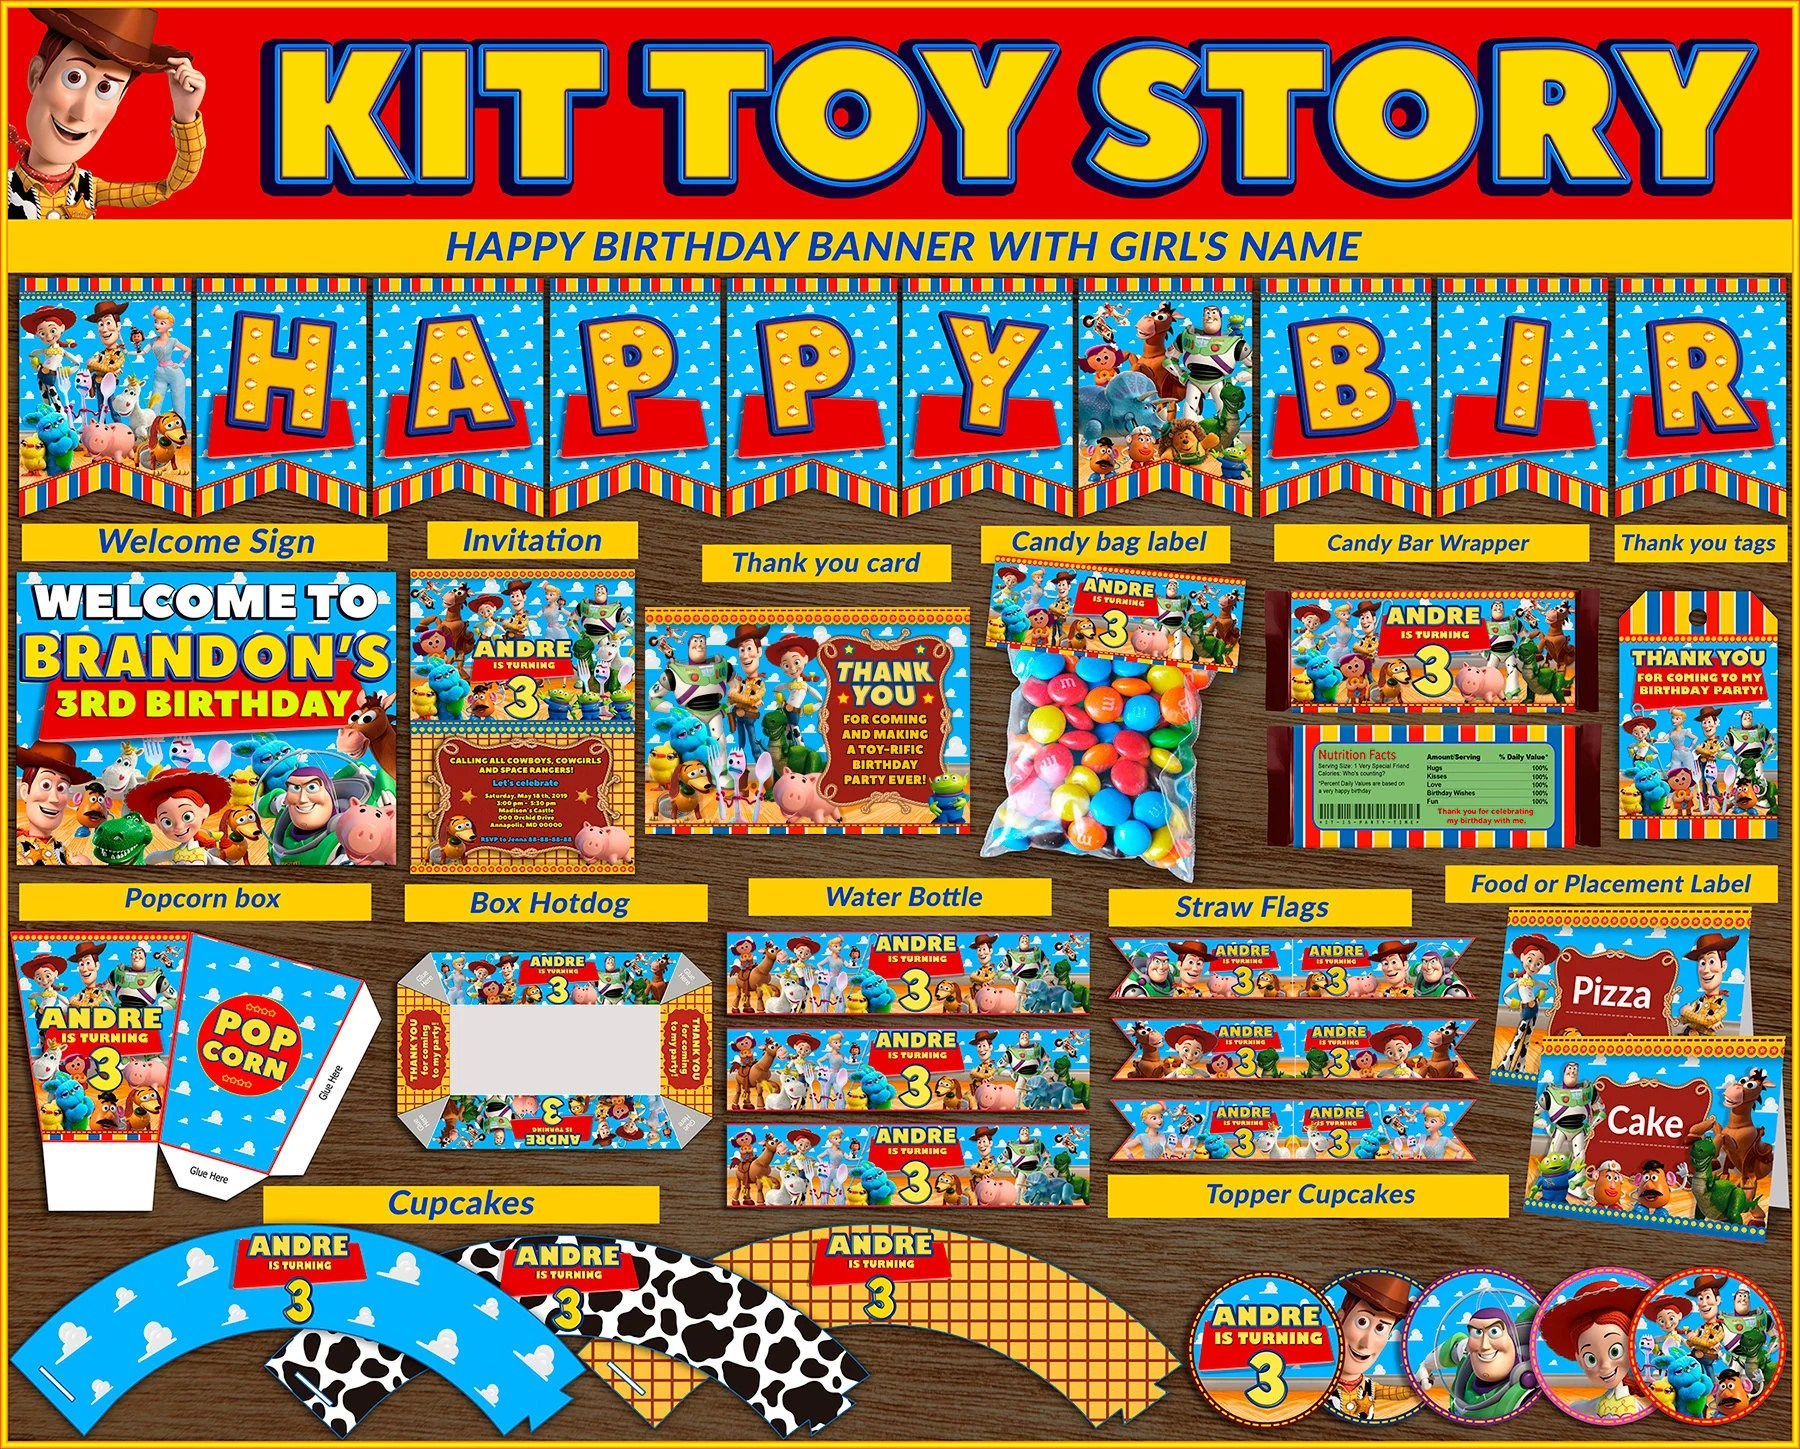 50 Off Toy Story 4 Printable Kit Toy Story Party Package